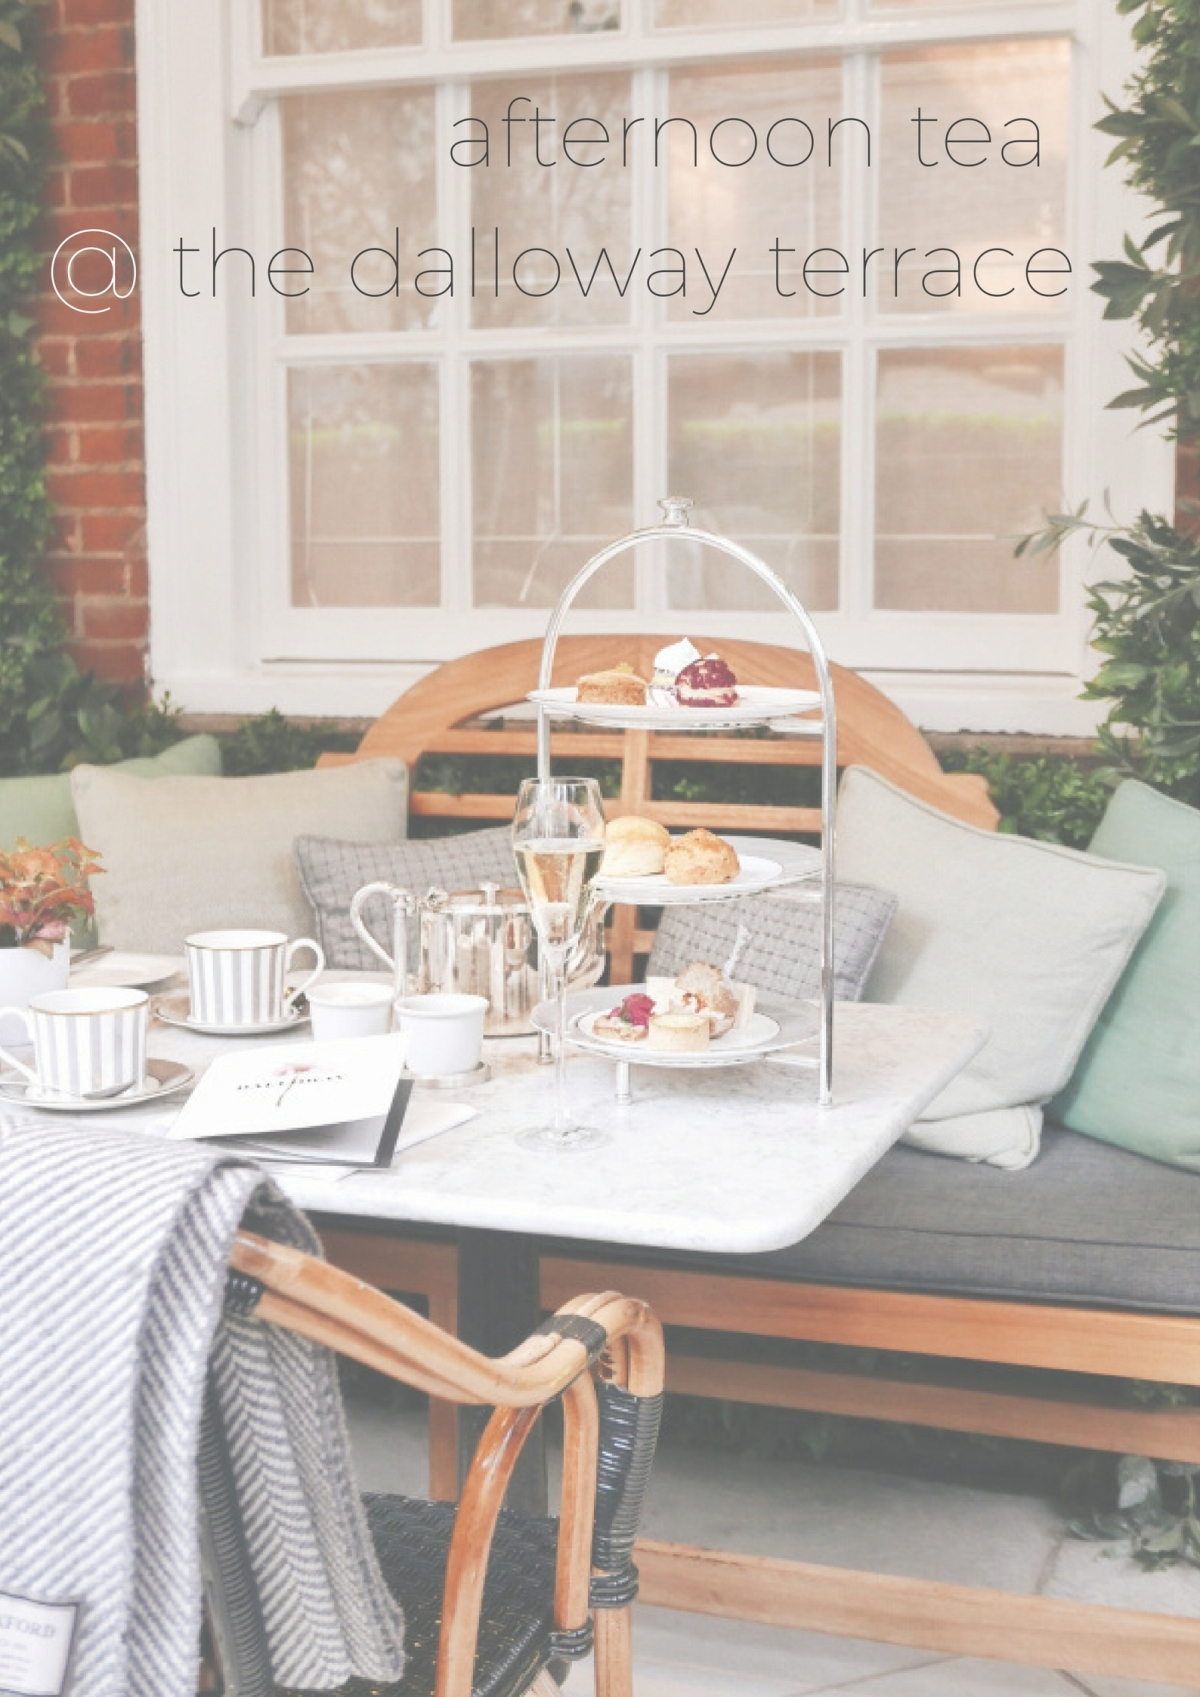 Afternoon Tea @ the Dalloway Terrace, London